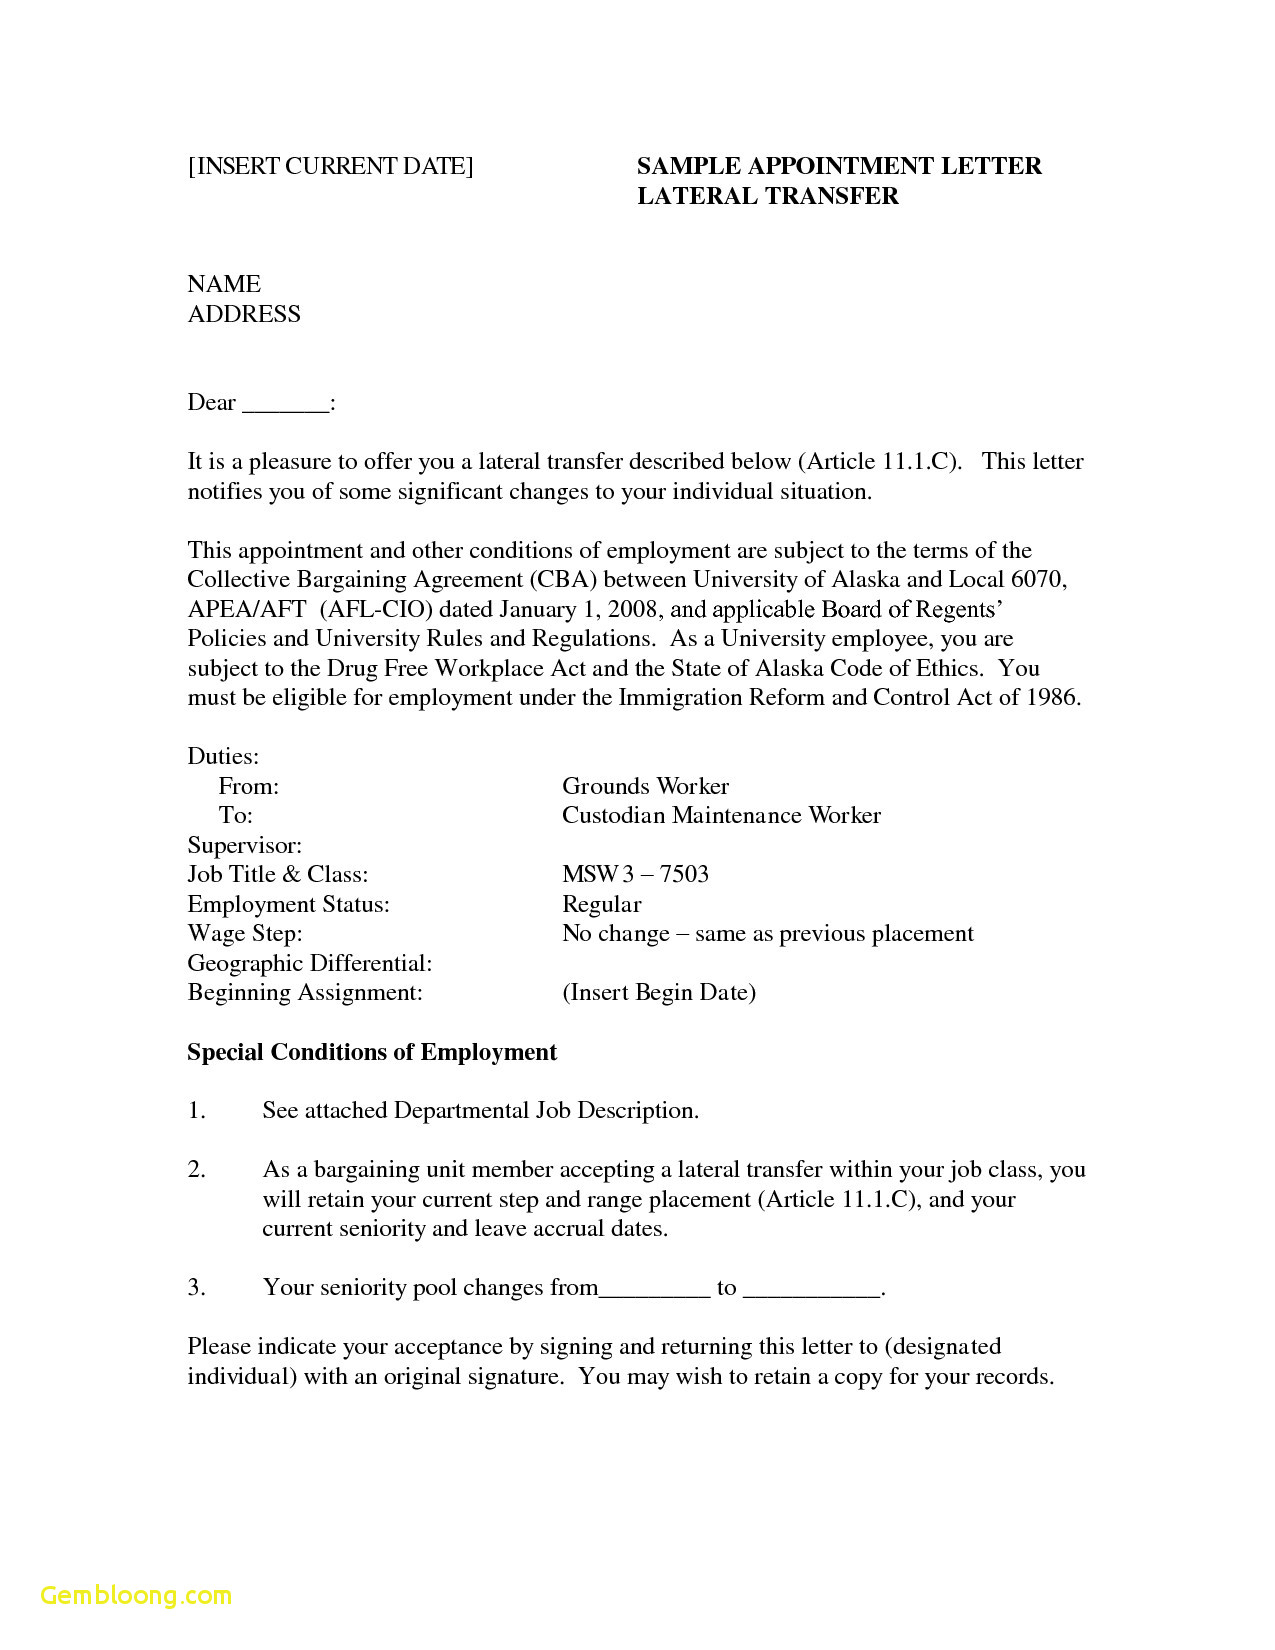 simple cover letter template word example-Simple Resume Outline Free Download Cover Letter Template Word 2014 Fresh Relocation Cover Letters Od 13-a